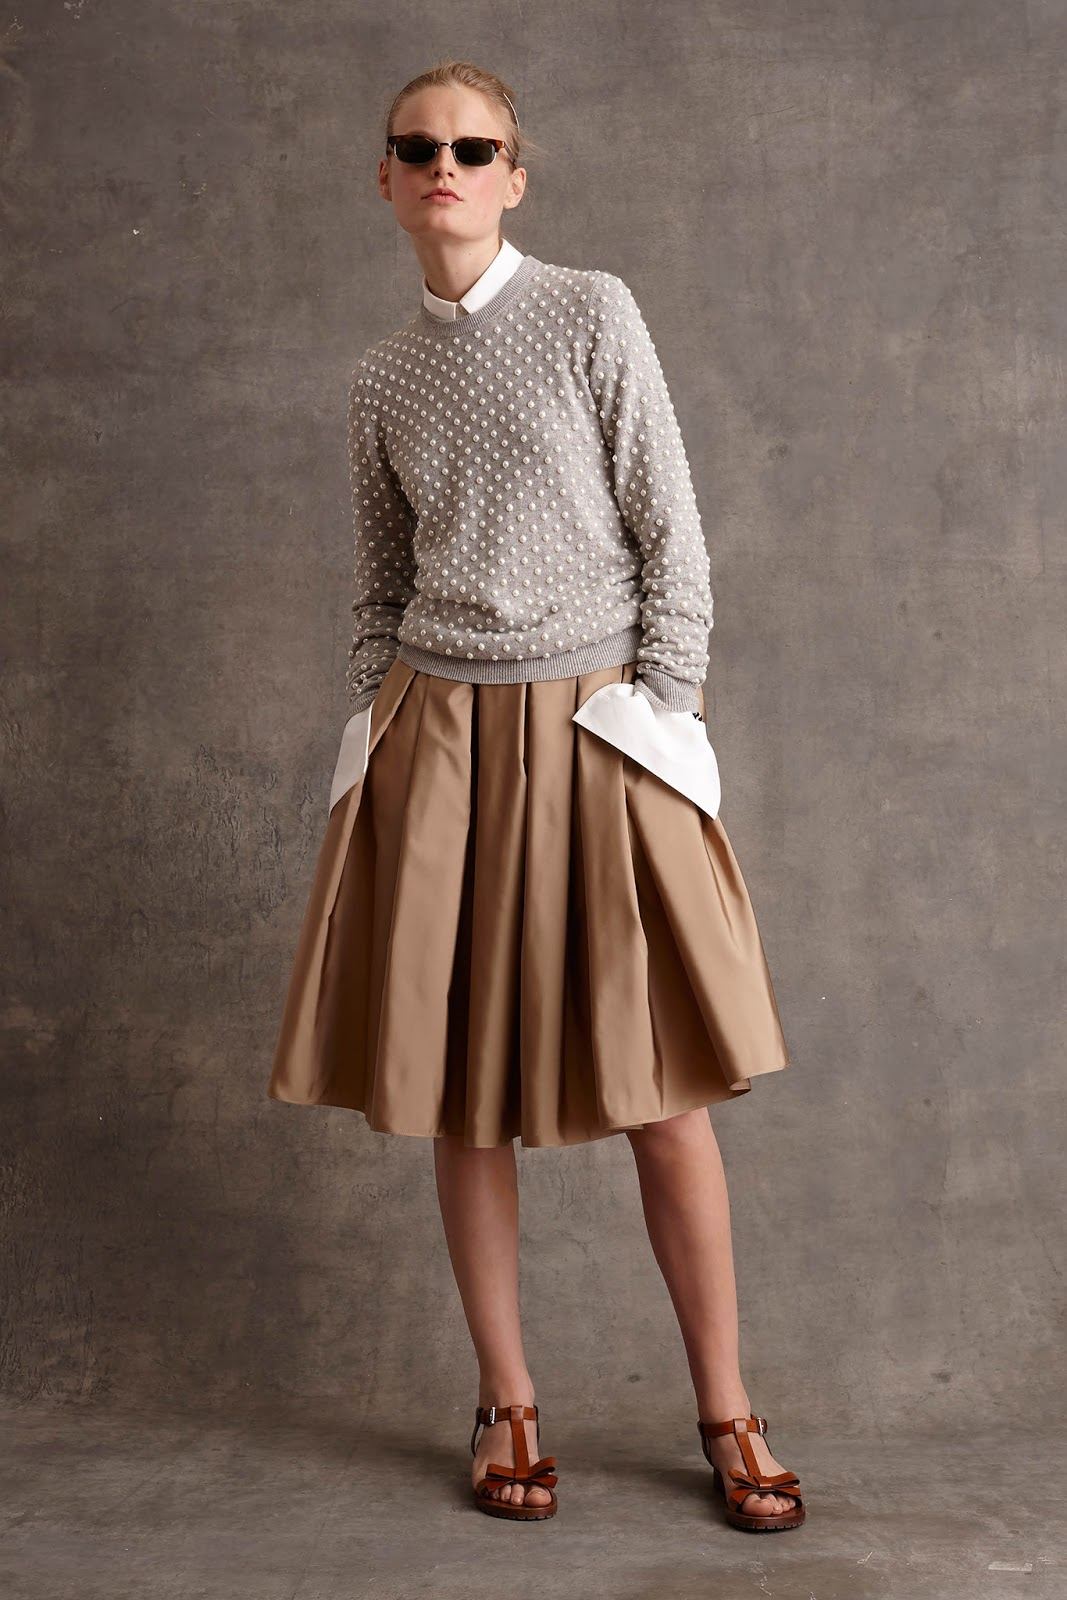 Michael Kors Pre-Fall 2015 via fashioned by love